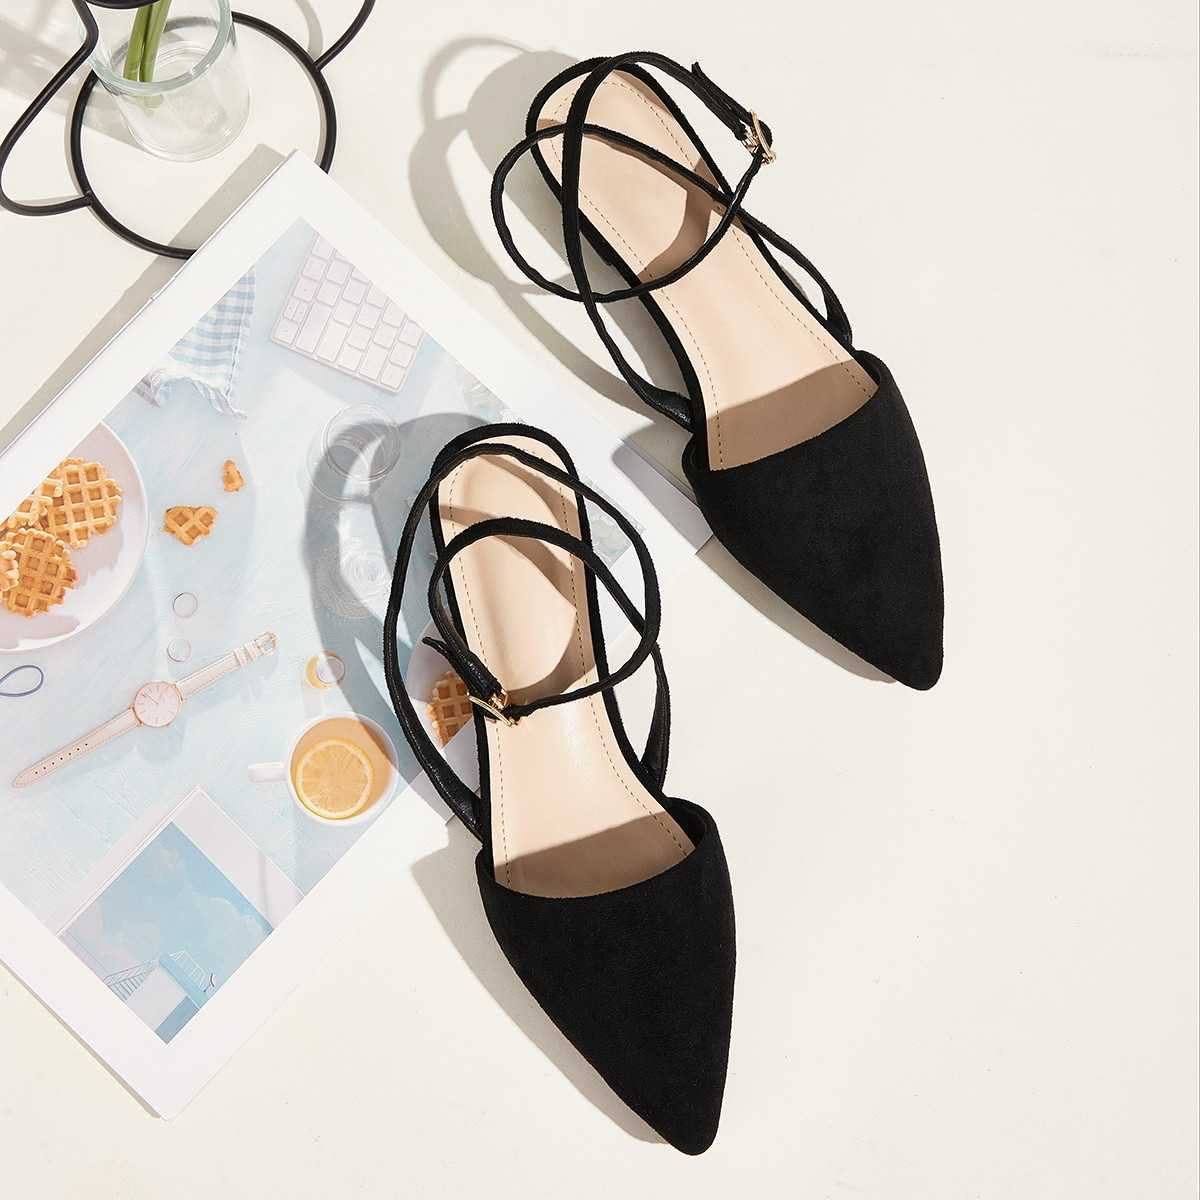 Point Toe Ankle Strap Flats in Black by ROMWE on GOOFASH